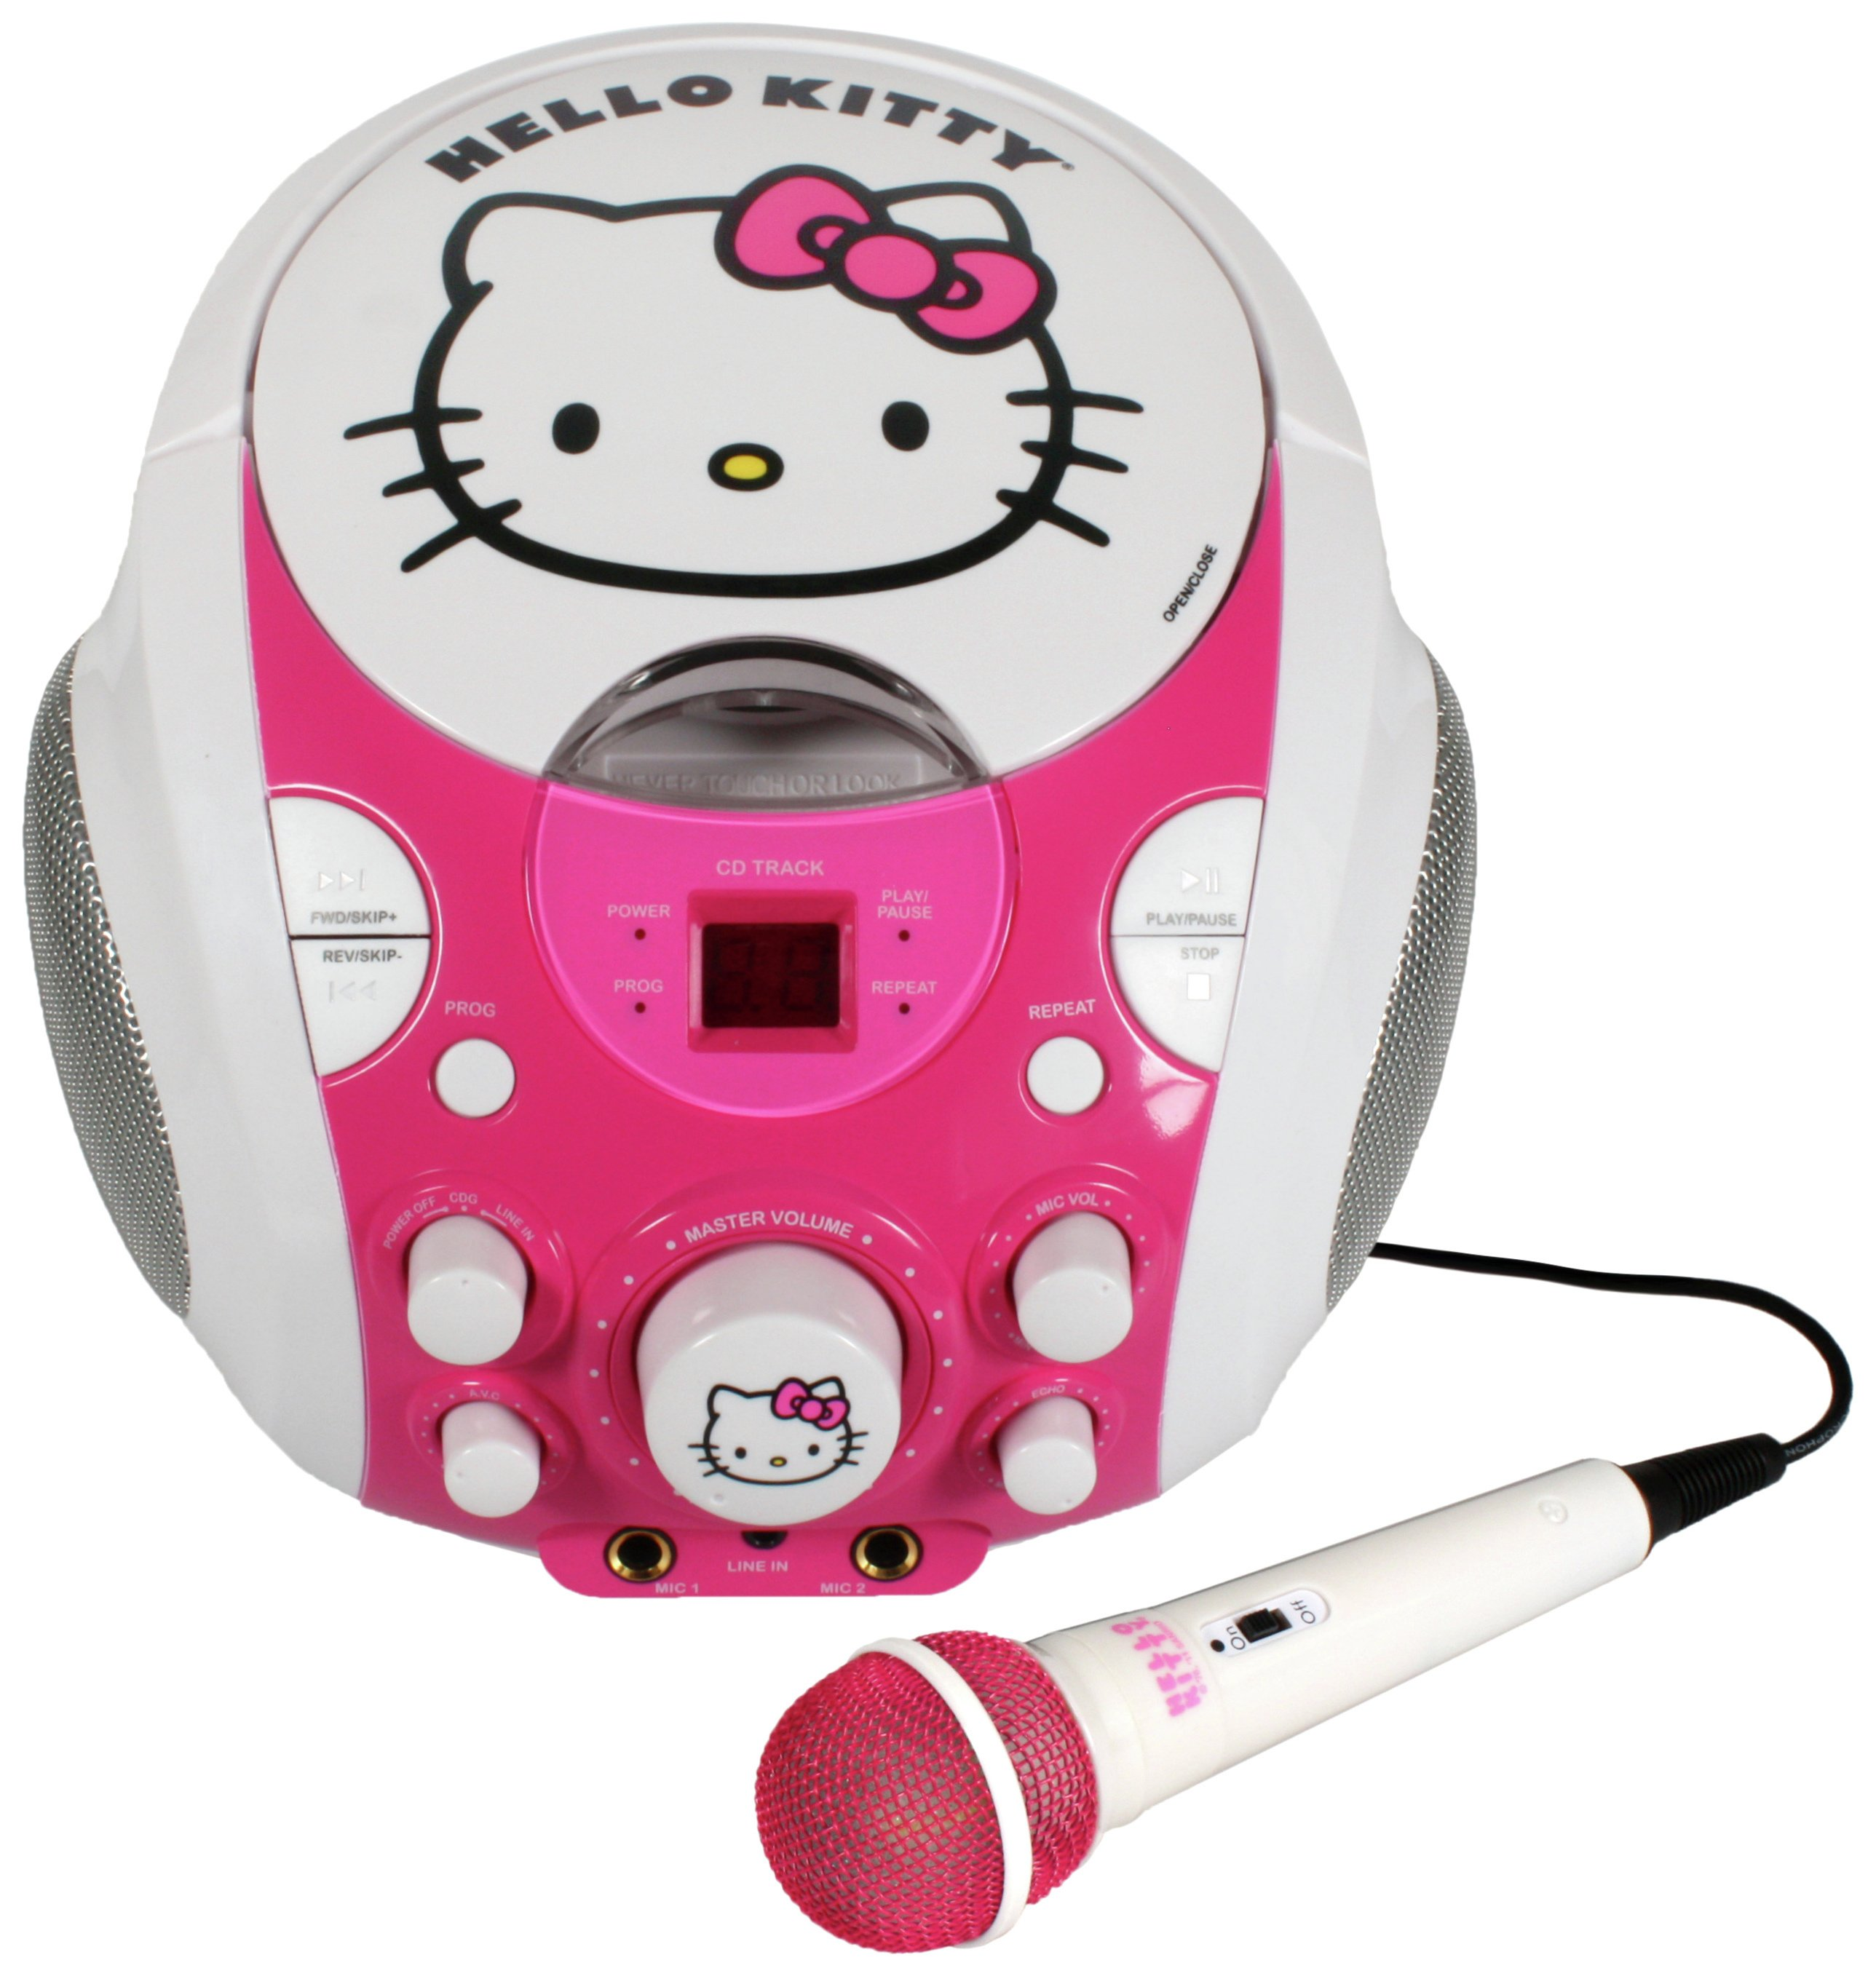 Image of Hello Kitty Portable CDG Karaoke Machine.